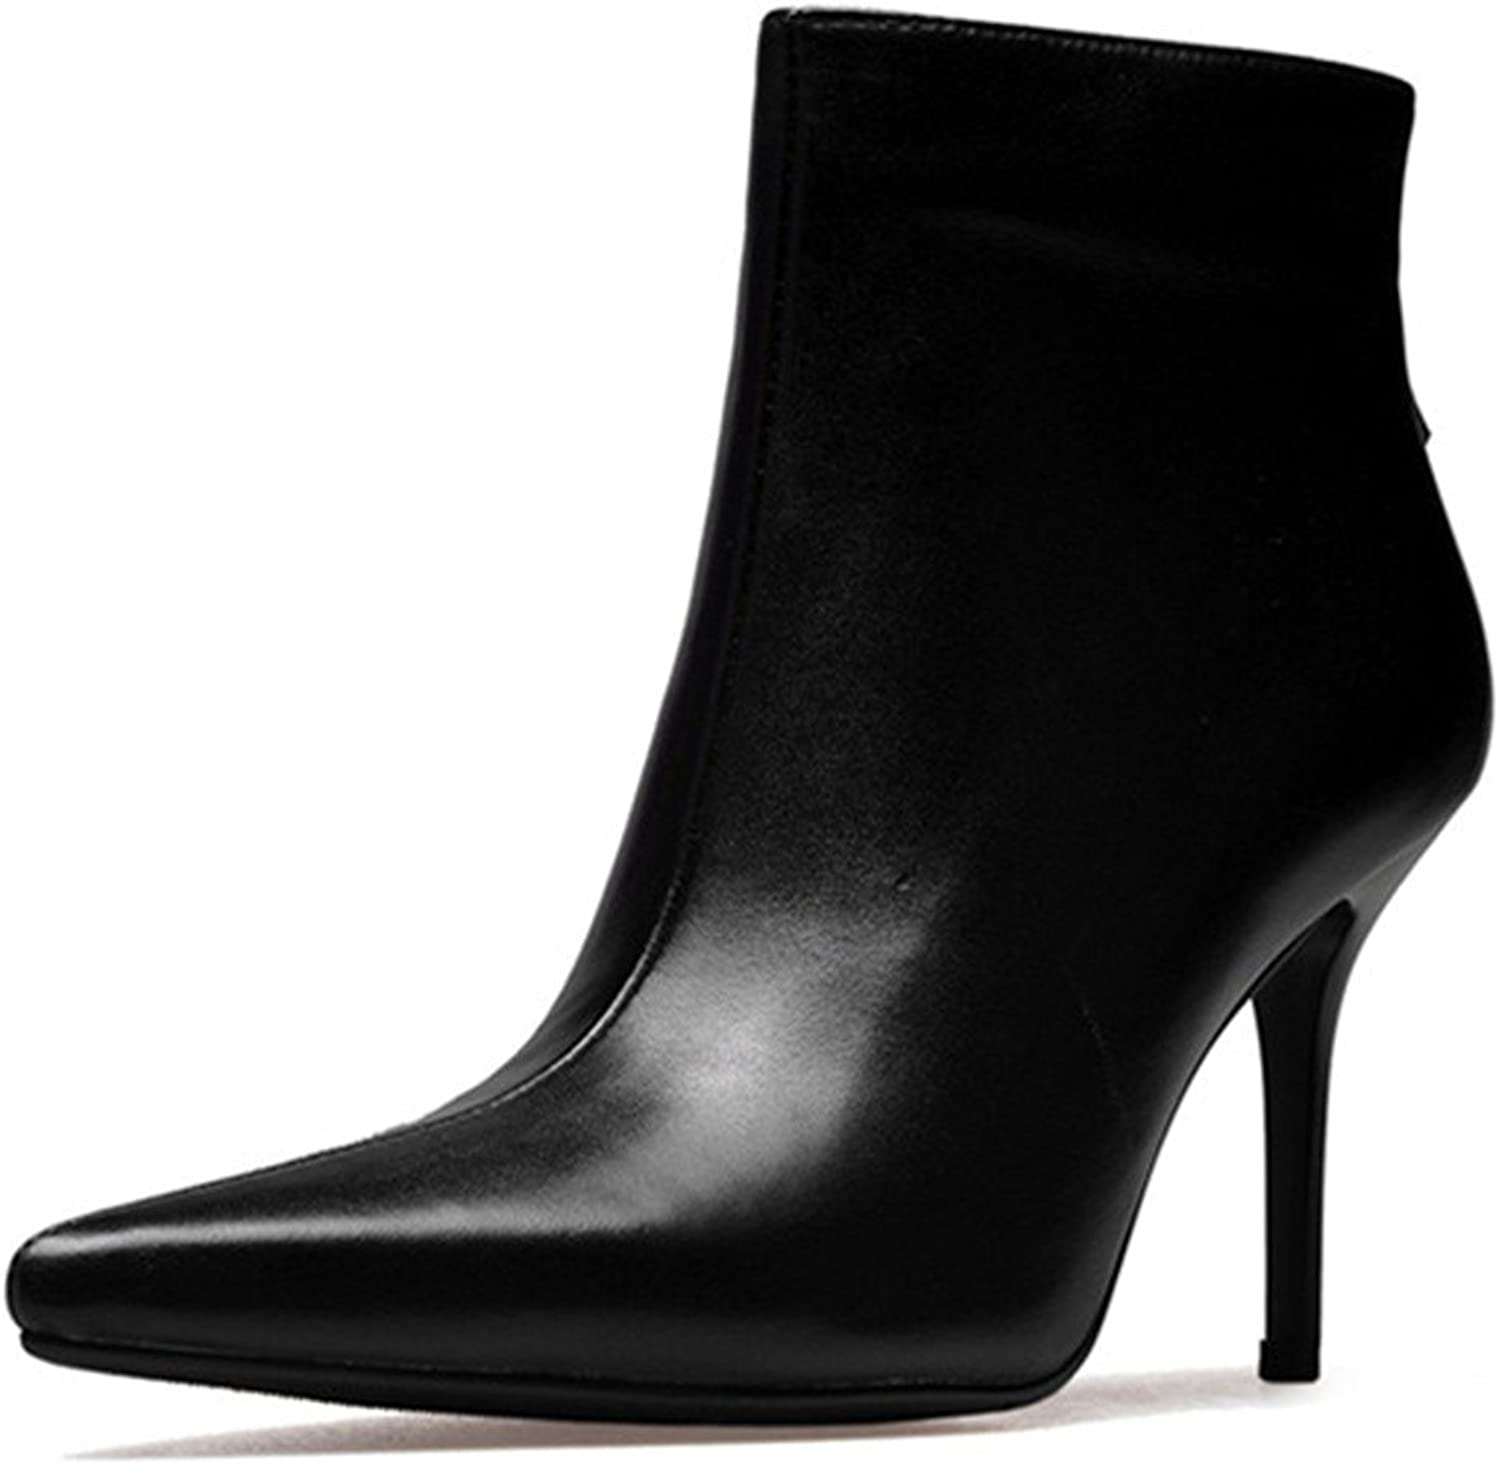 Nine Seven Cow Leather Women's Pointed Toe Stiletto High Heel Eleagnt Fashion Handmade Dress Ankle High Booties